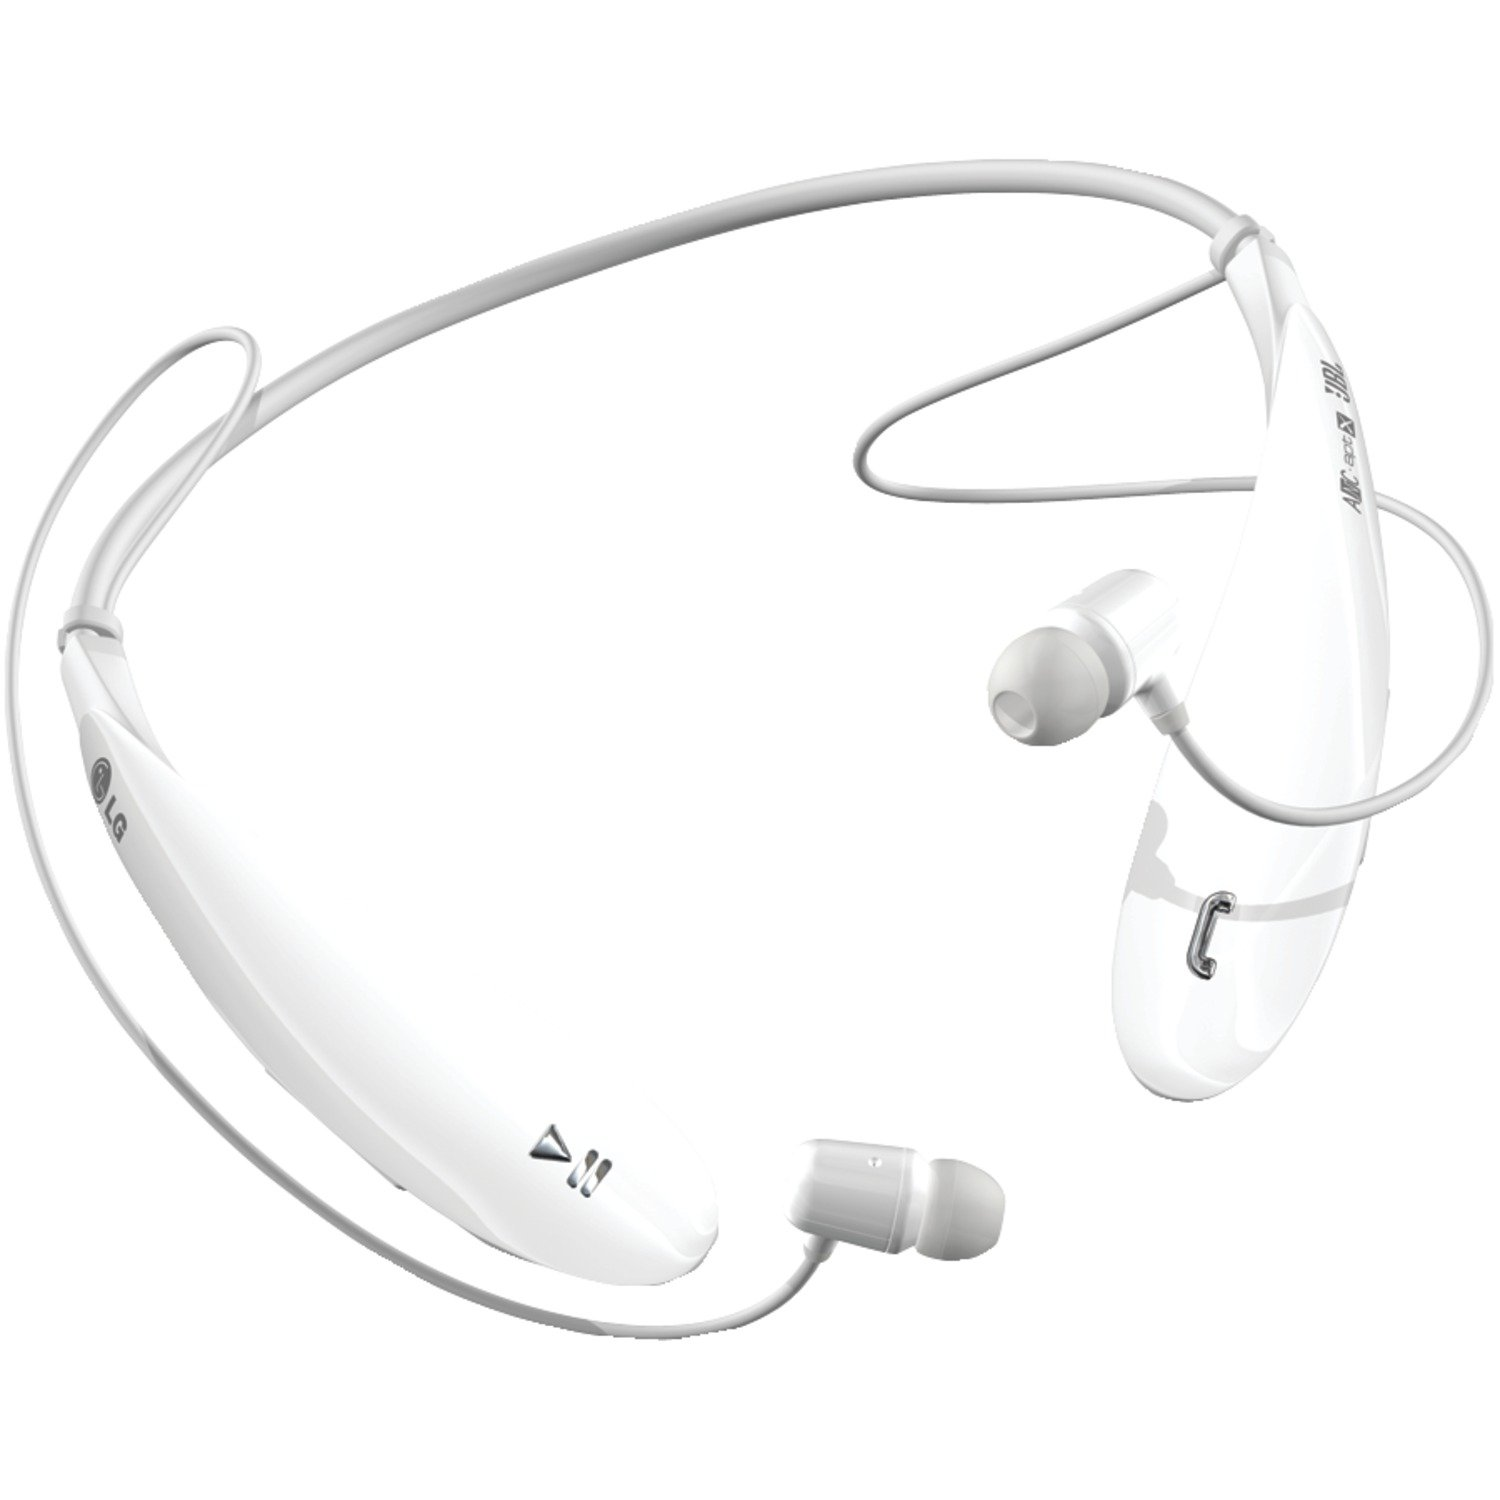 61YZqvg576L._SL1500_ amazon com lg electronics tone ultra (hbs 800) bluetooth stereo wire diagram on headphones with mic at fashall.co